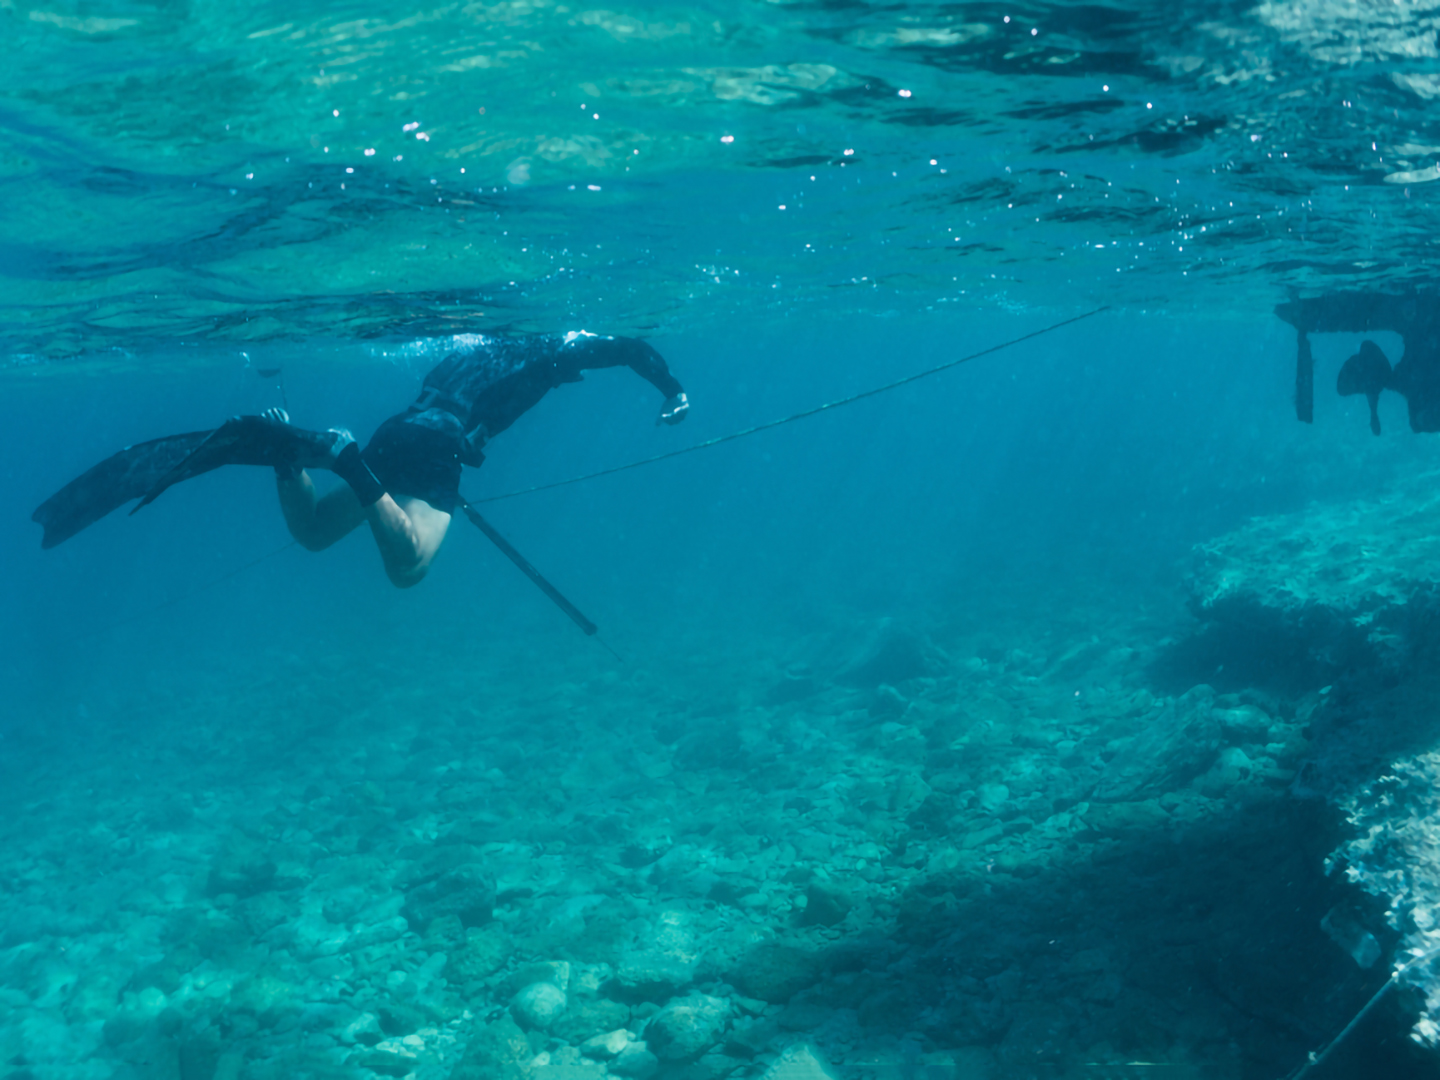 A diver with a spear gun hunting the shallow rock beds in the Florida Keys